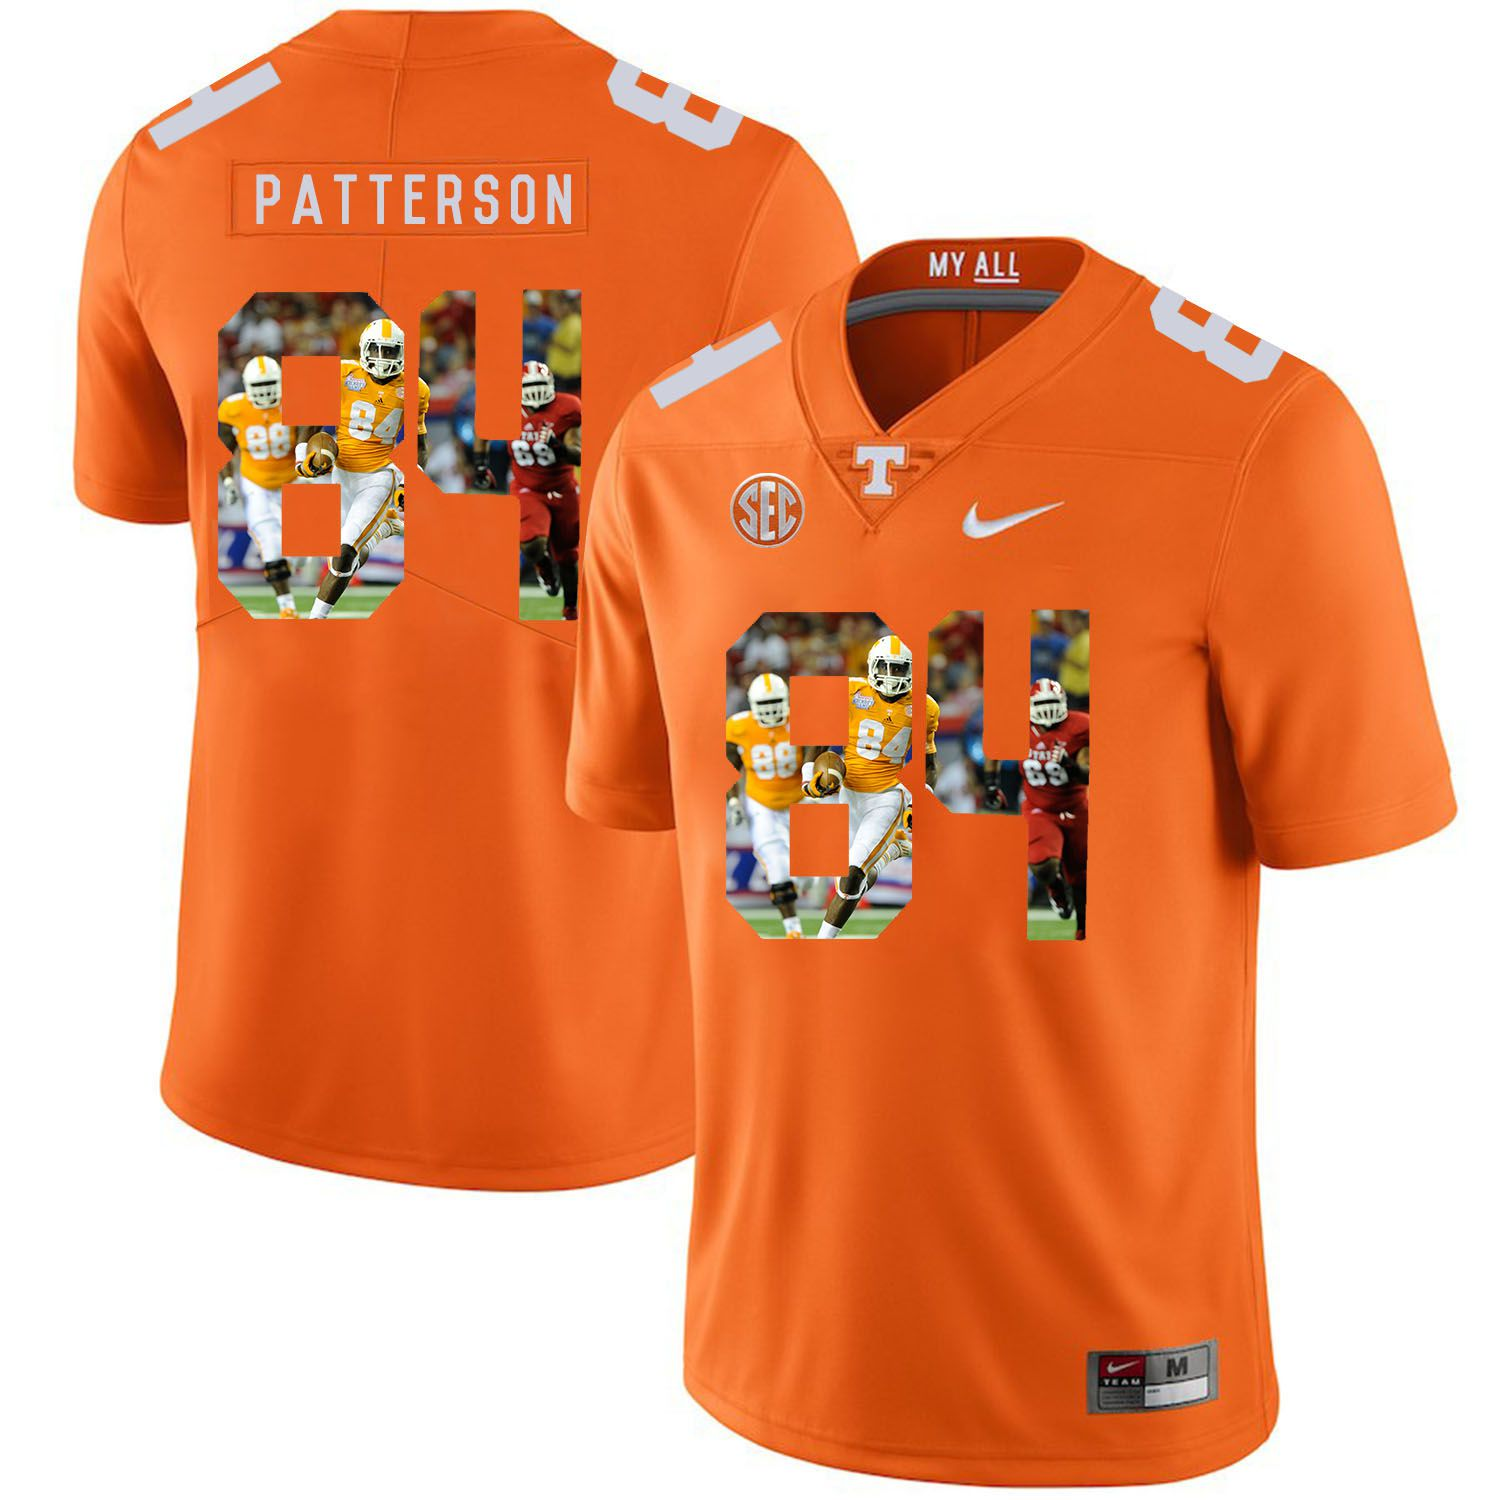 Men Tennessee Volunteers 84 Patterson Orange Fashion Edition Customized NCAA Jerseys